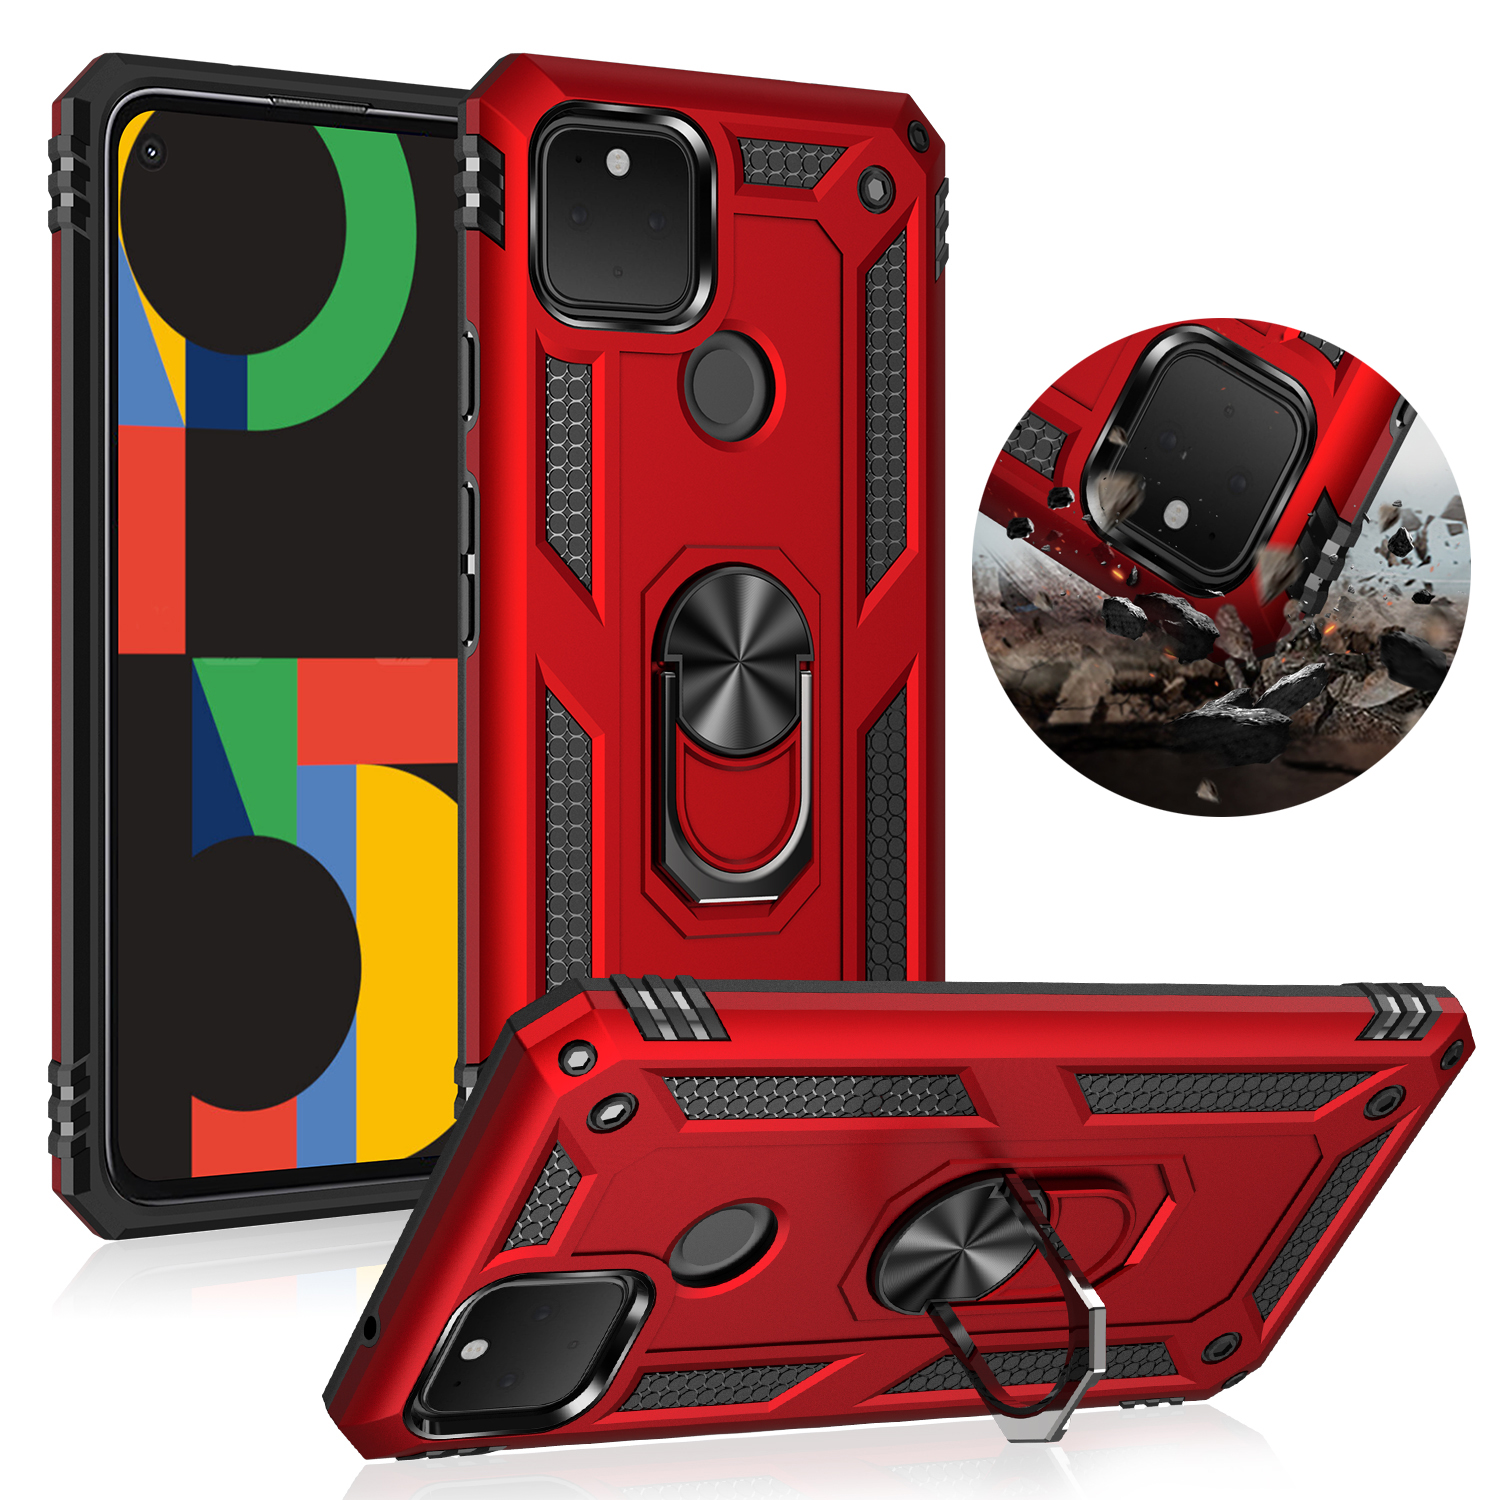 Armor Bumper Shockproof Case For Google Pixel 5 4A 4 XL 3A 3A XL Phone Case Finger Ring Kickstand Protective Cover For Google 5